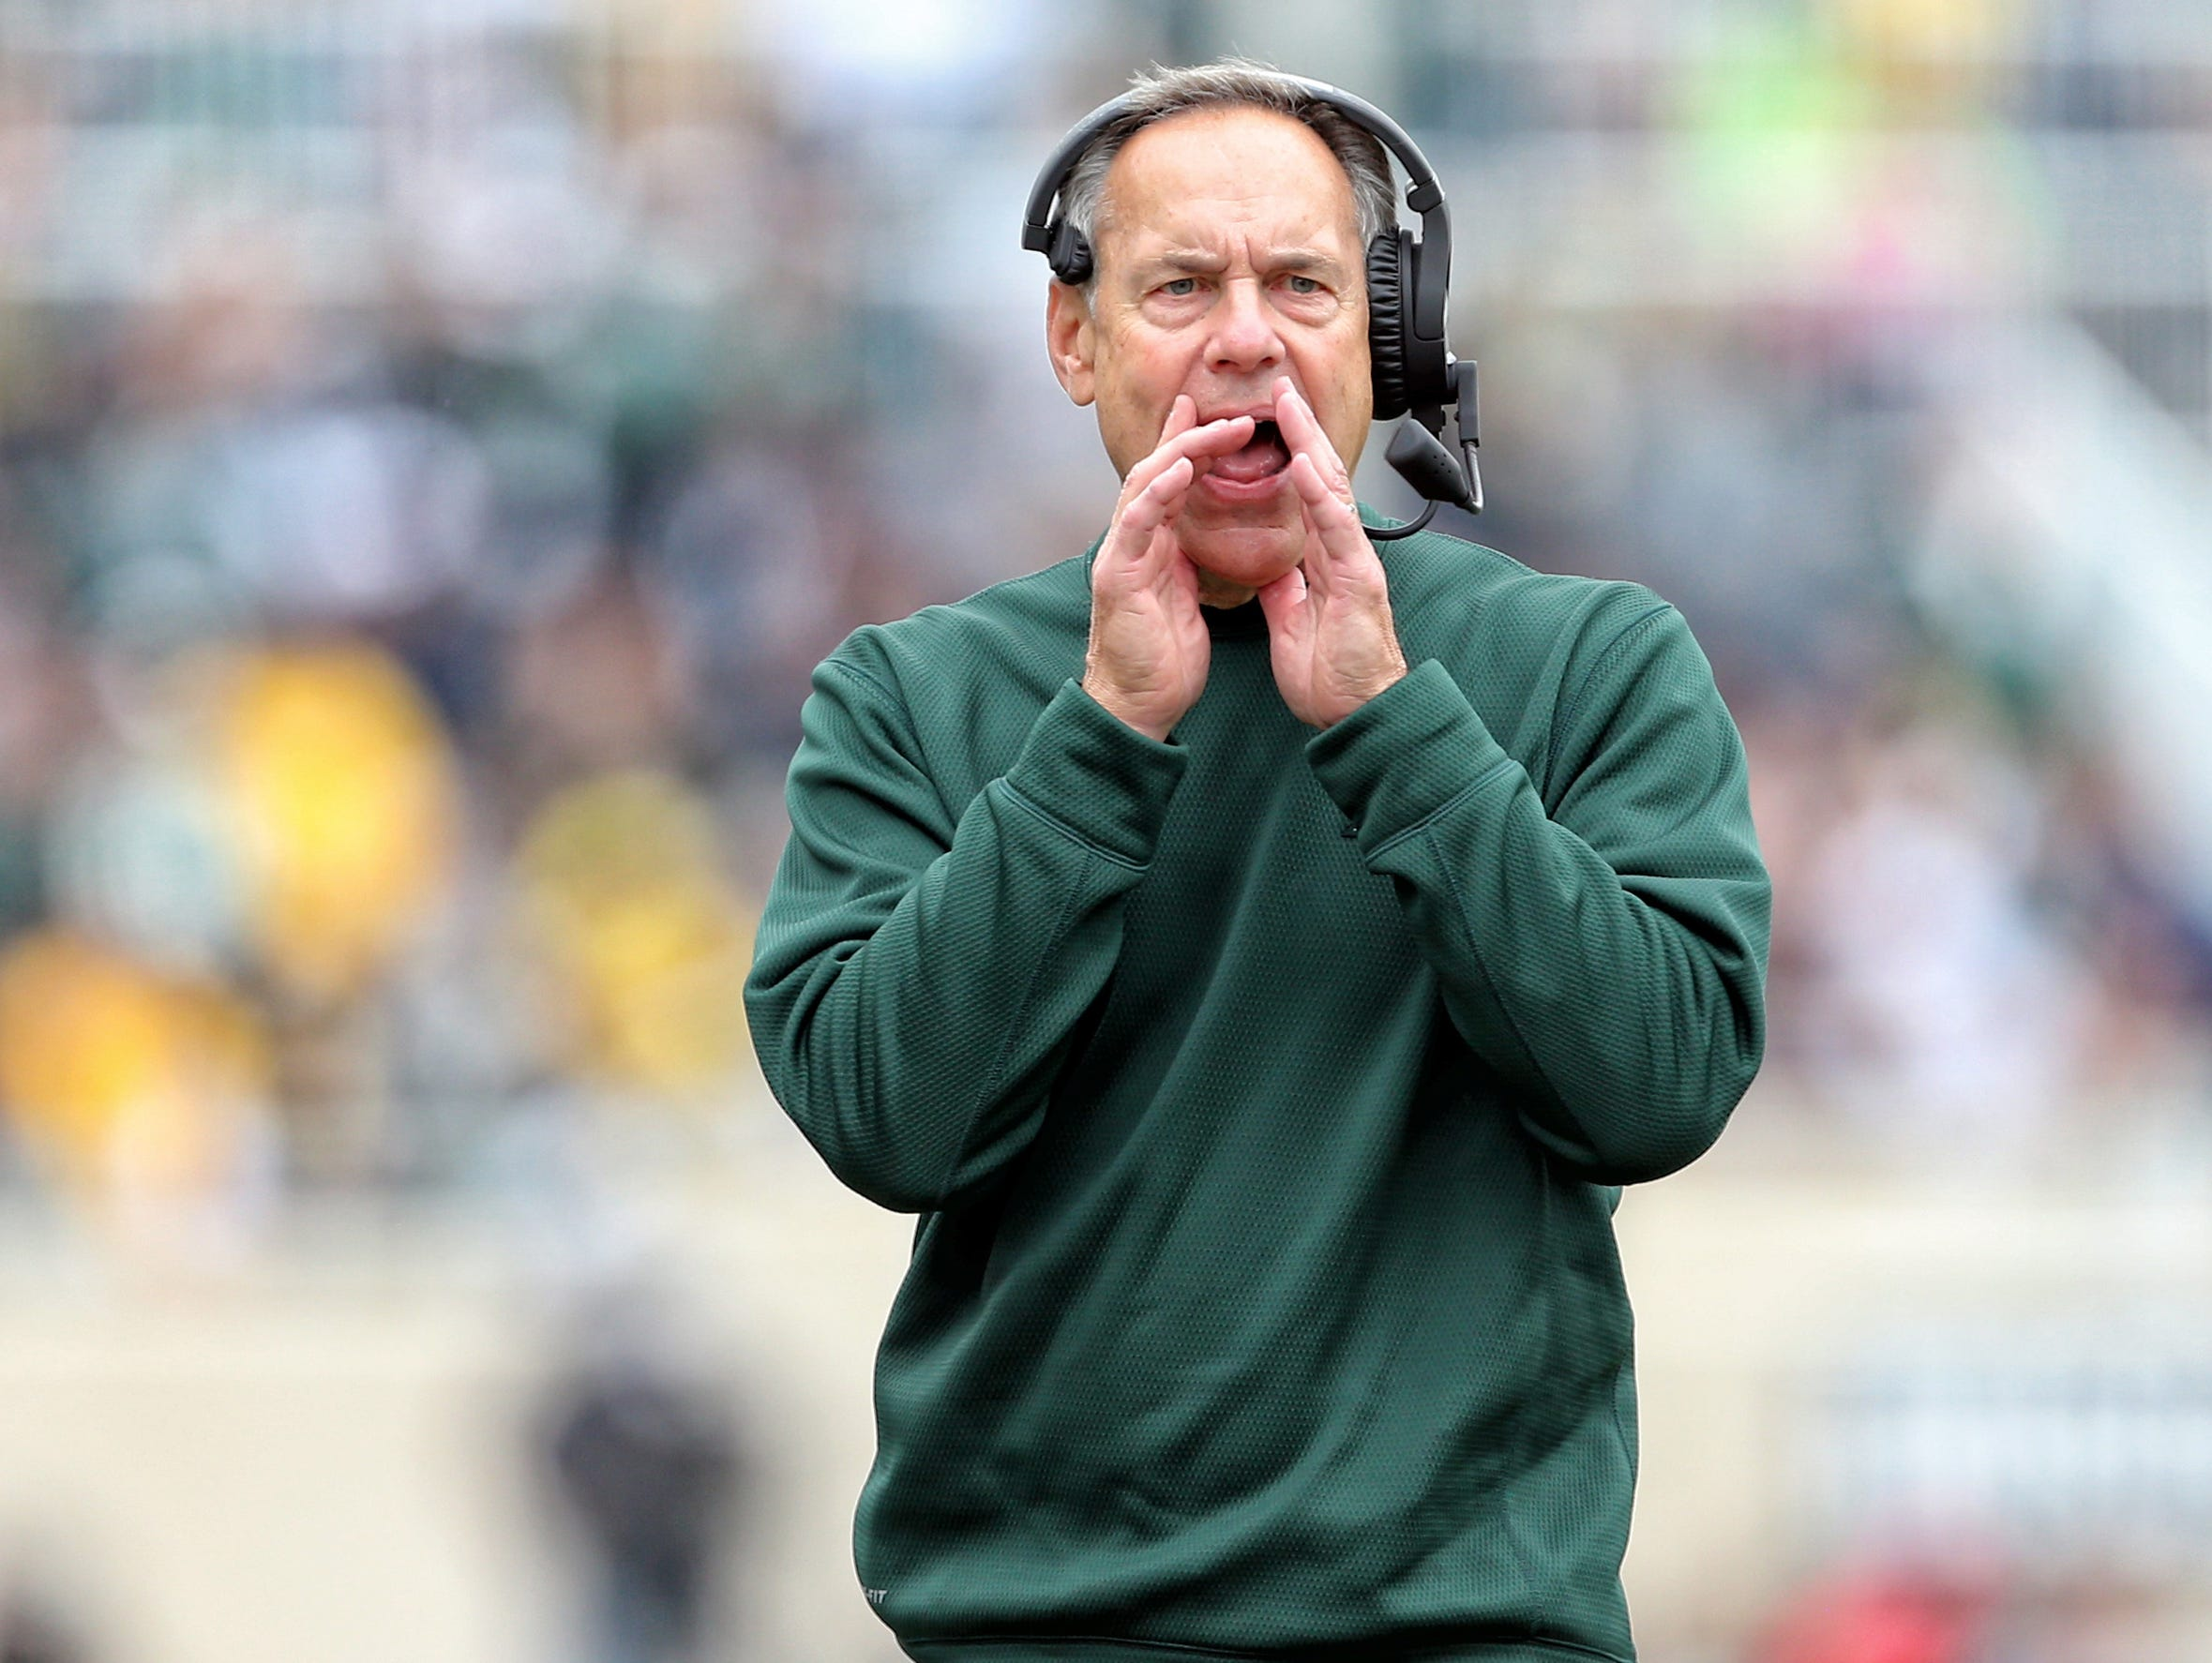 Michigan State football coach Mark Dantonio reacts to a play against Michigan on Oct. 29, 2016.